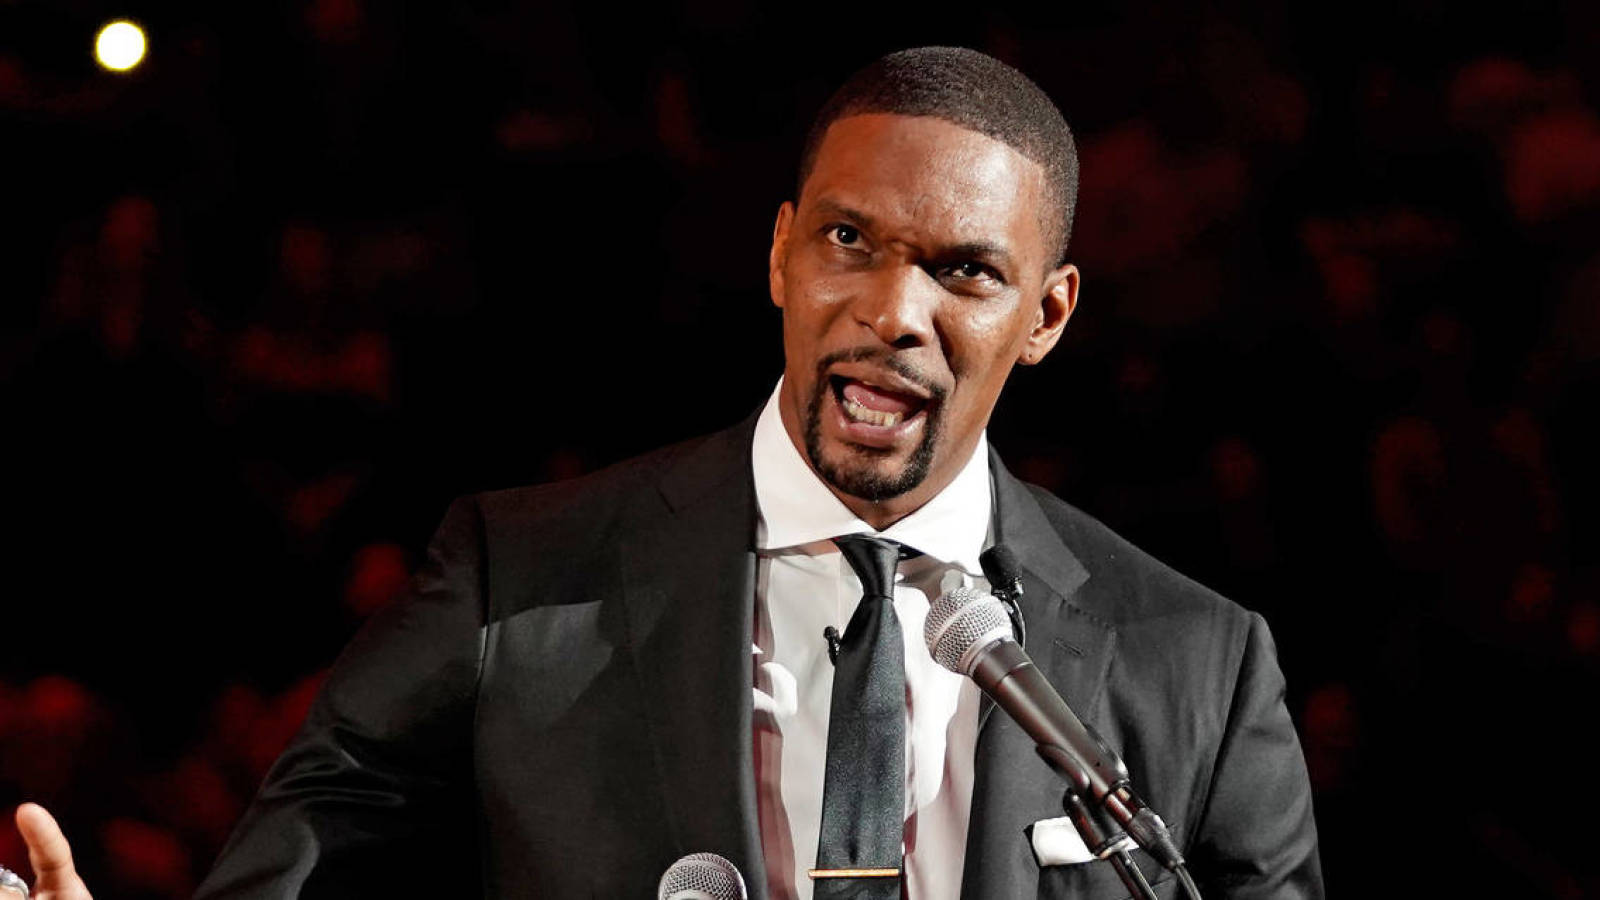 Chris Bosh didn't believe LeBron James when he texted about leaving Heat